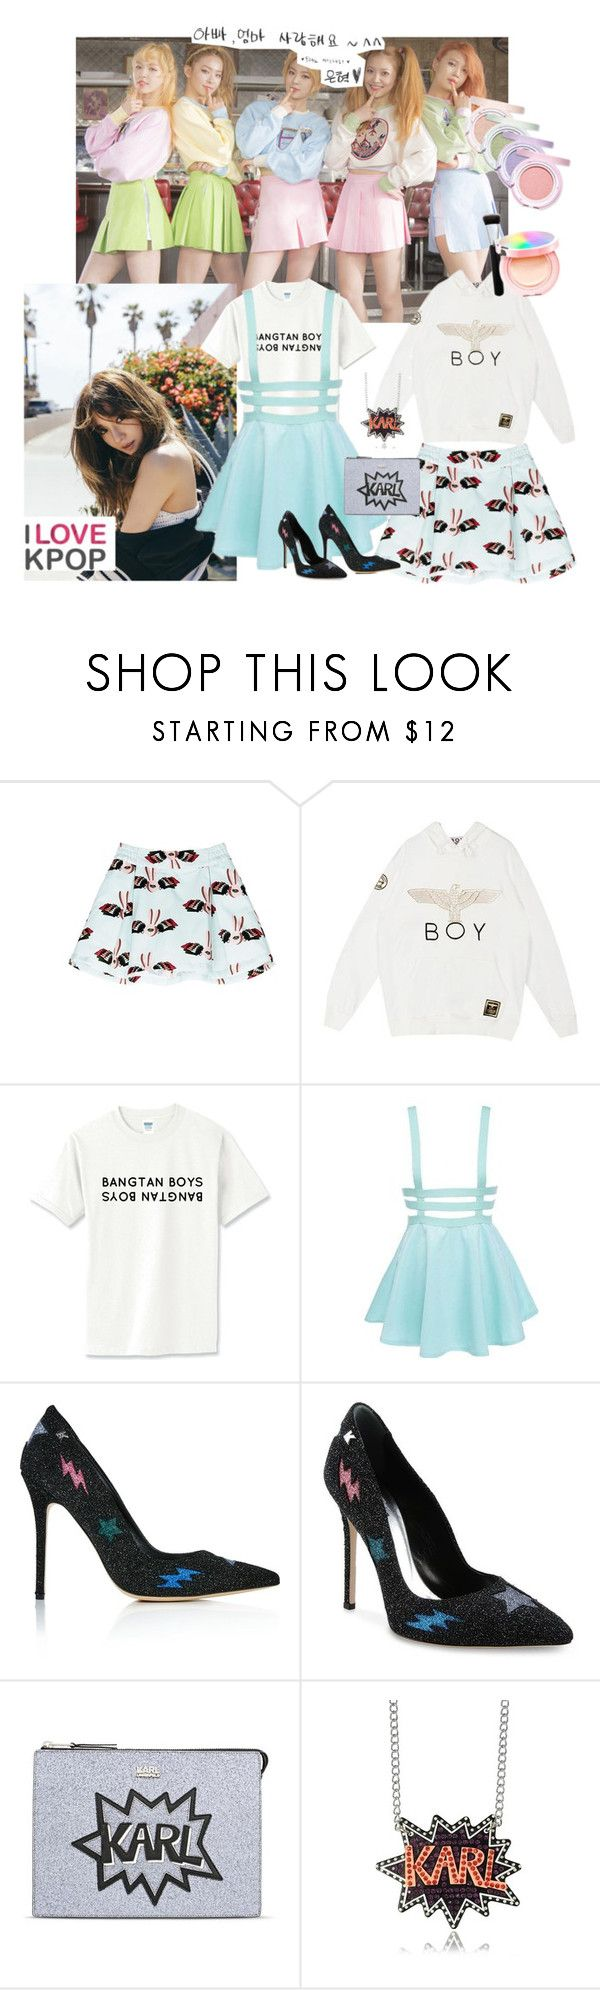 """""""Not now Karl!"""" by total-nicole ❤ liked on Polyvore featuring HELEN LEE, BOY London, Etude House, Karl Lagerfeld, contest and kpop"""